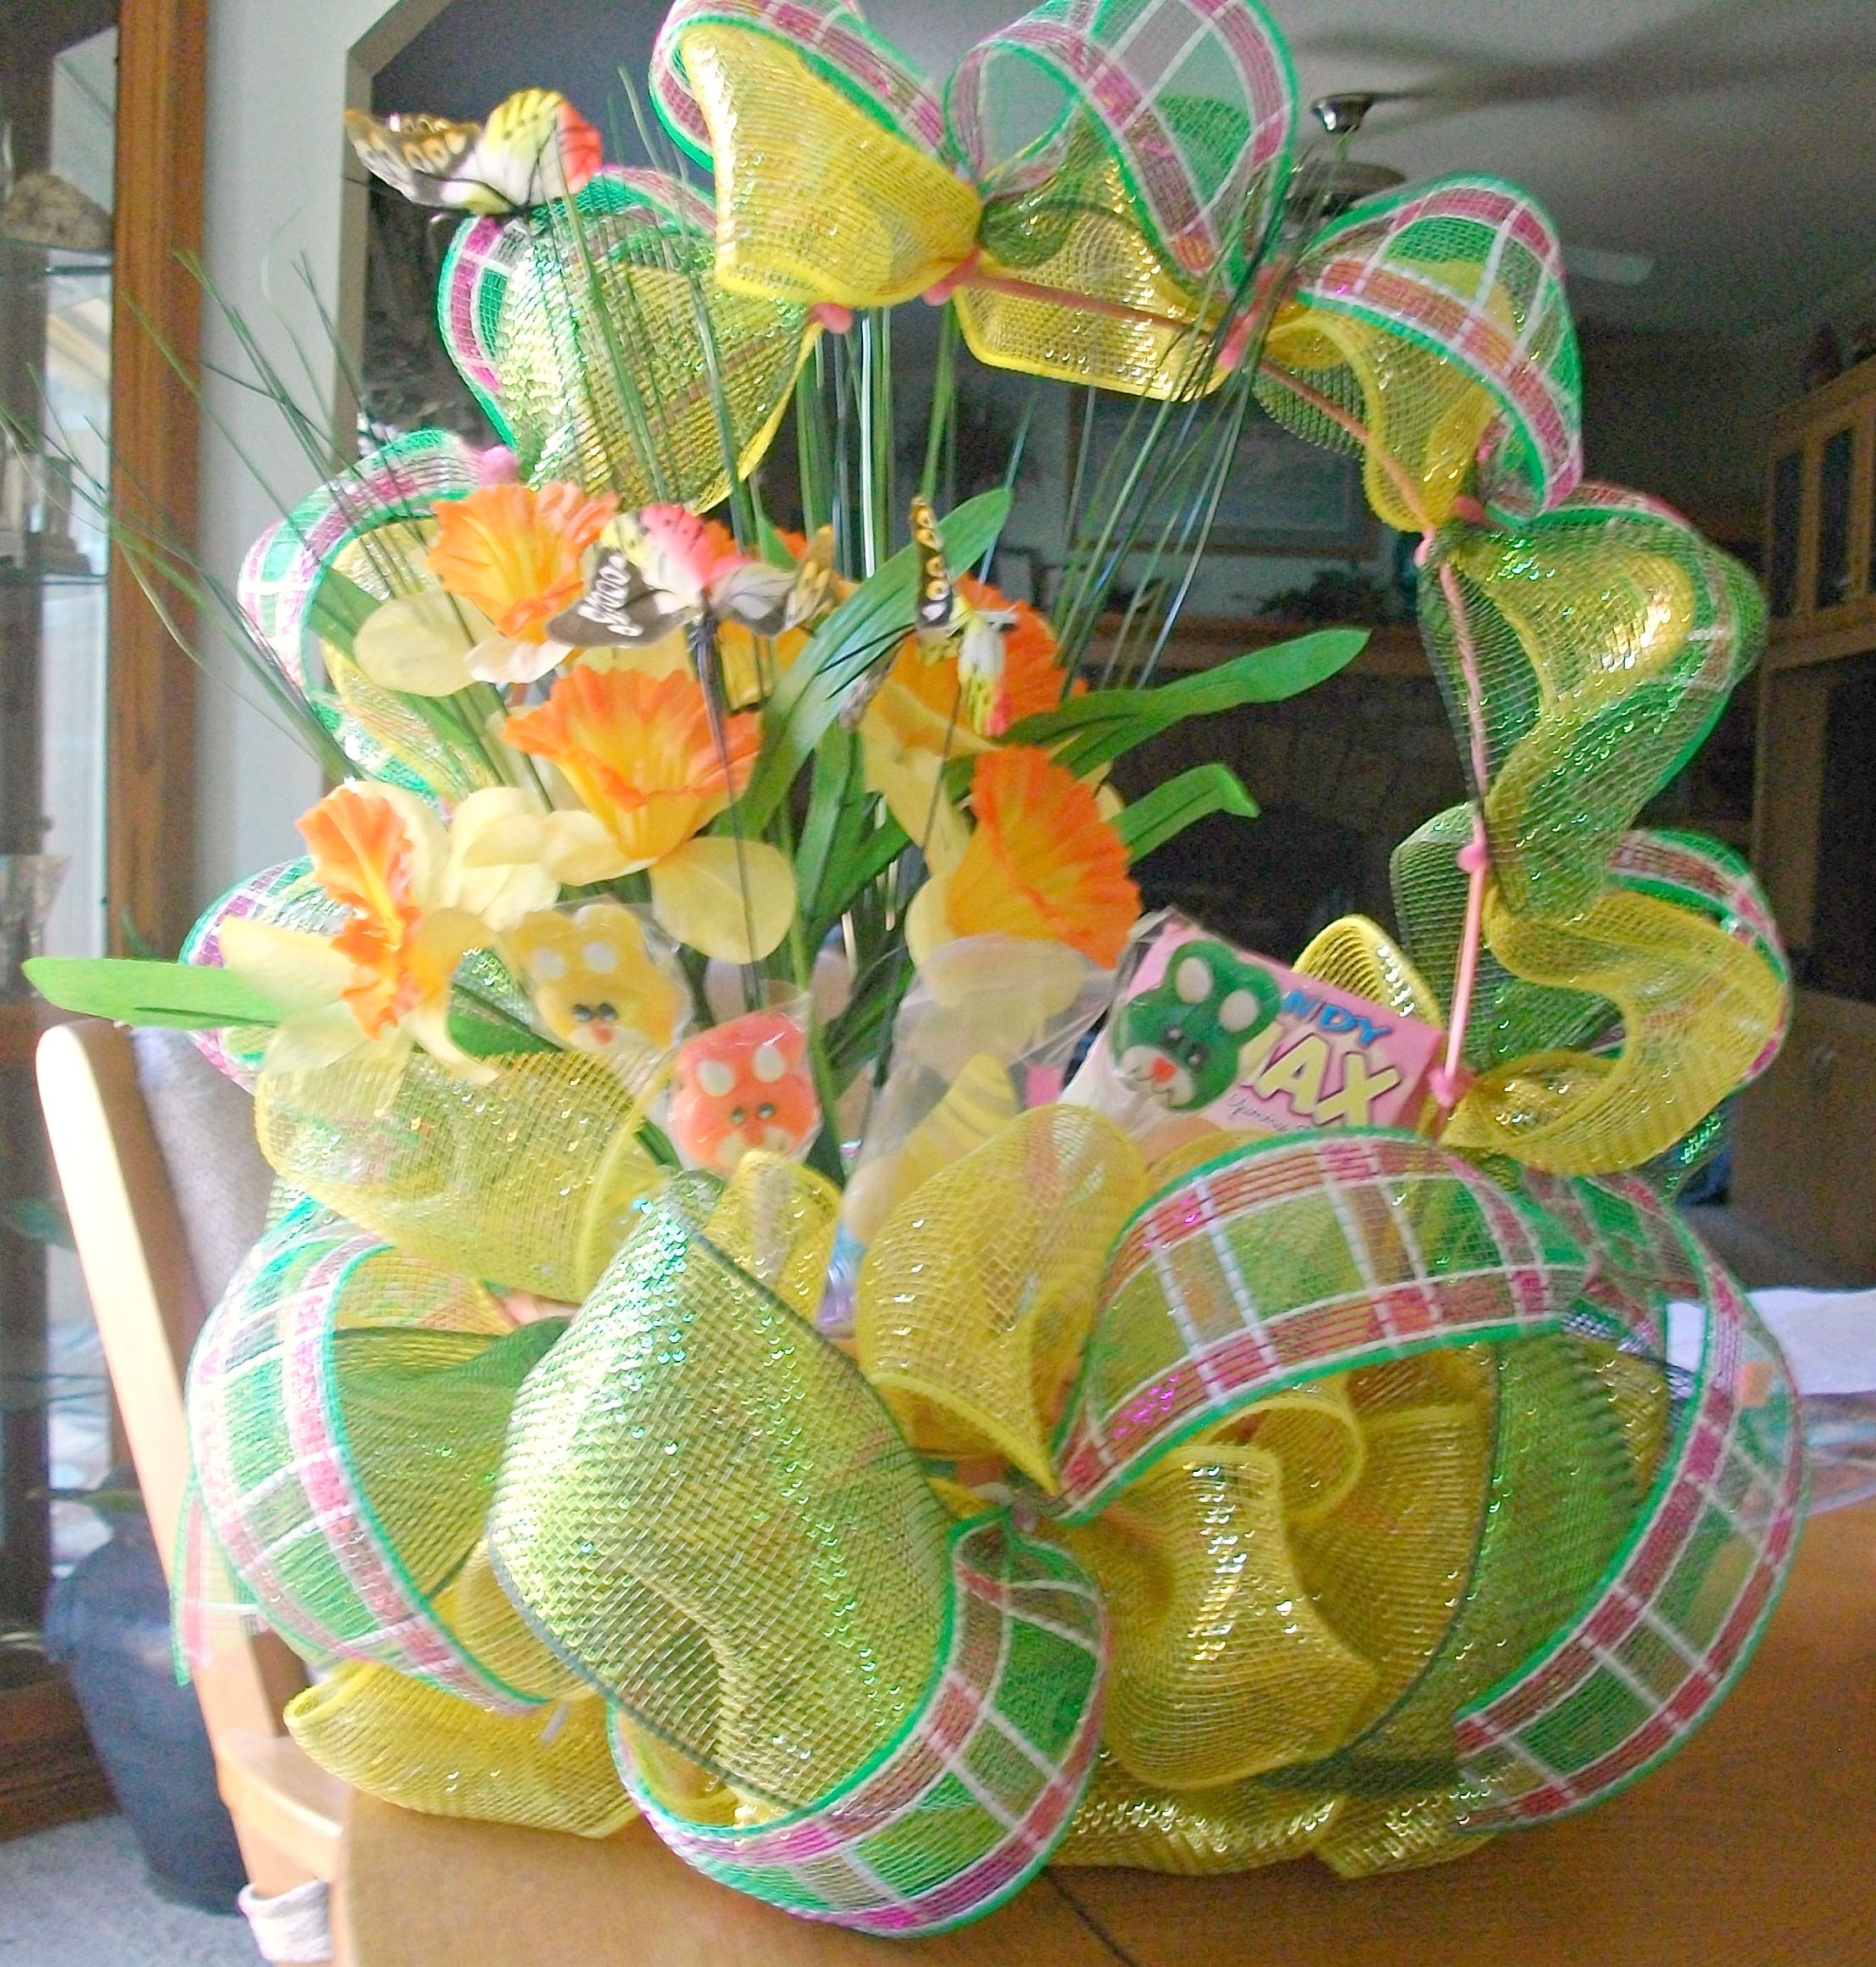 Decomesh easter basket using a basket from the dollar tree decomesh easter basket using a basket from the dollar tree negle Image collections